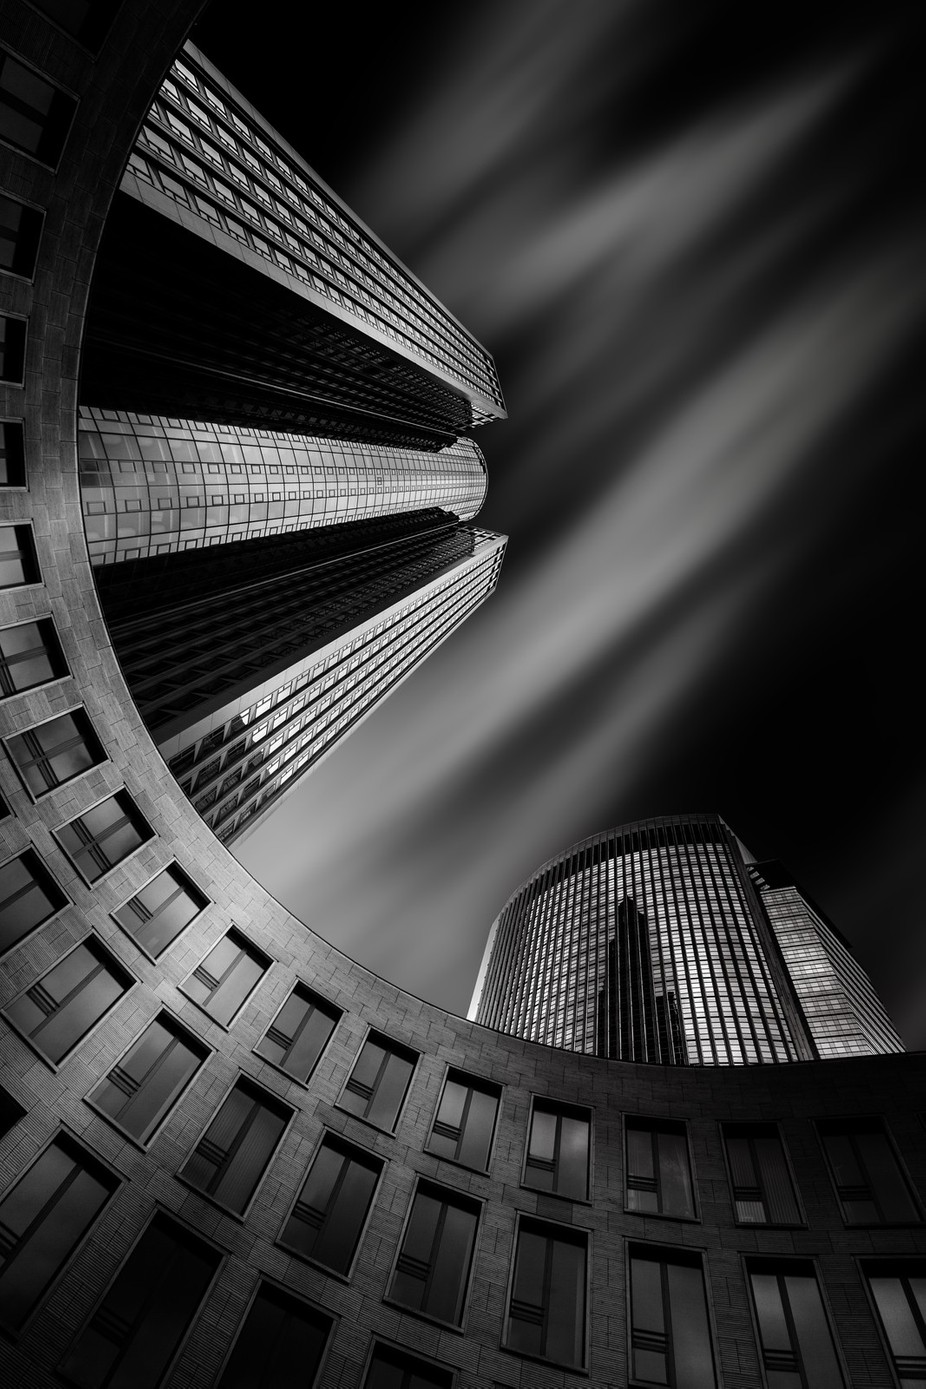 Tower 185 by Anneliese-Photography - Black And White Architecture Photo Contest